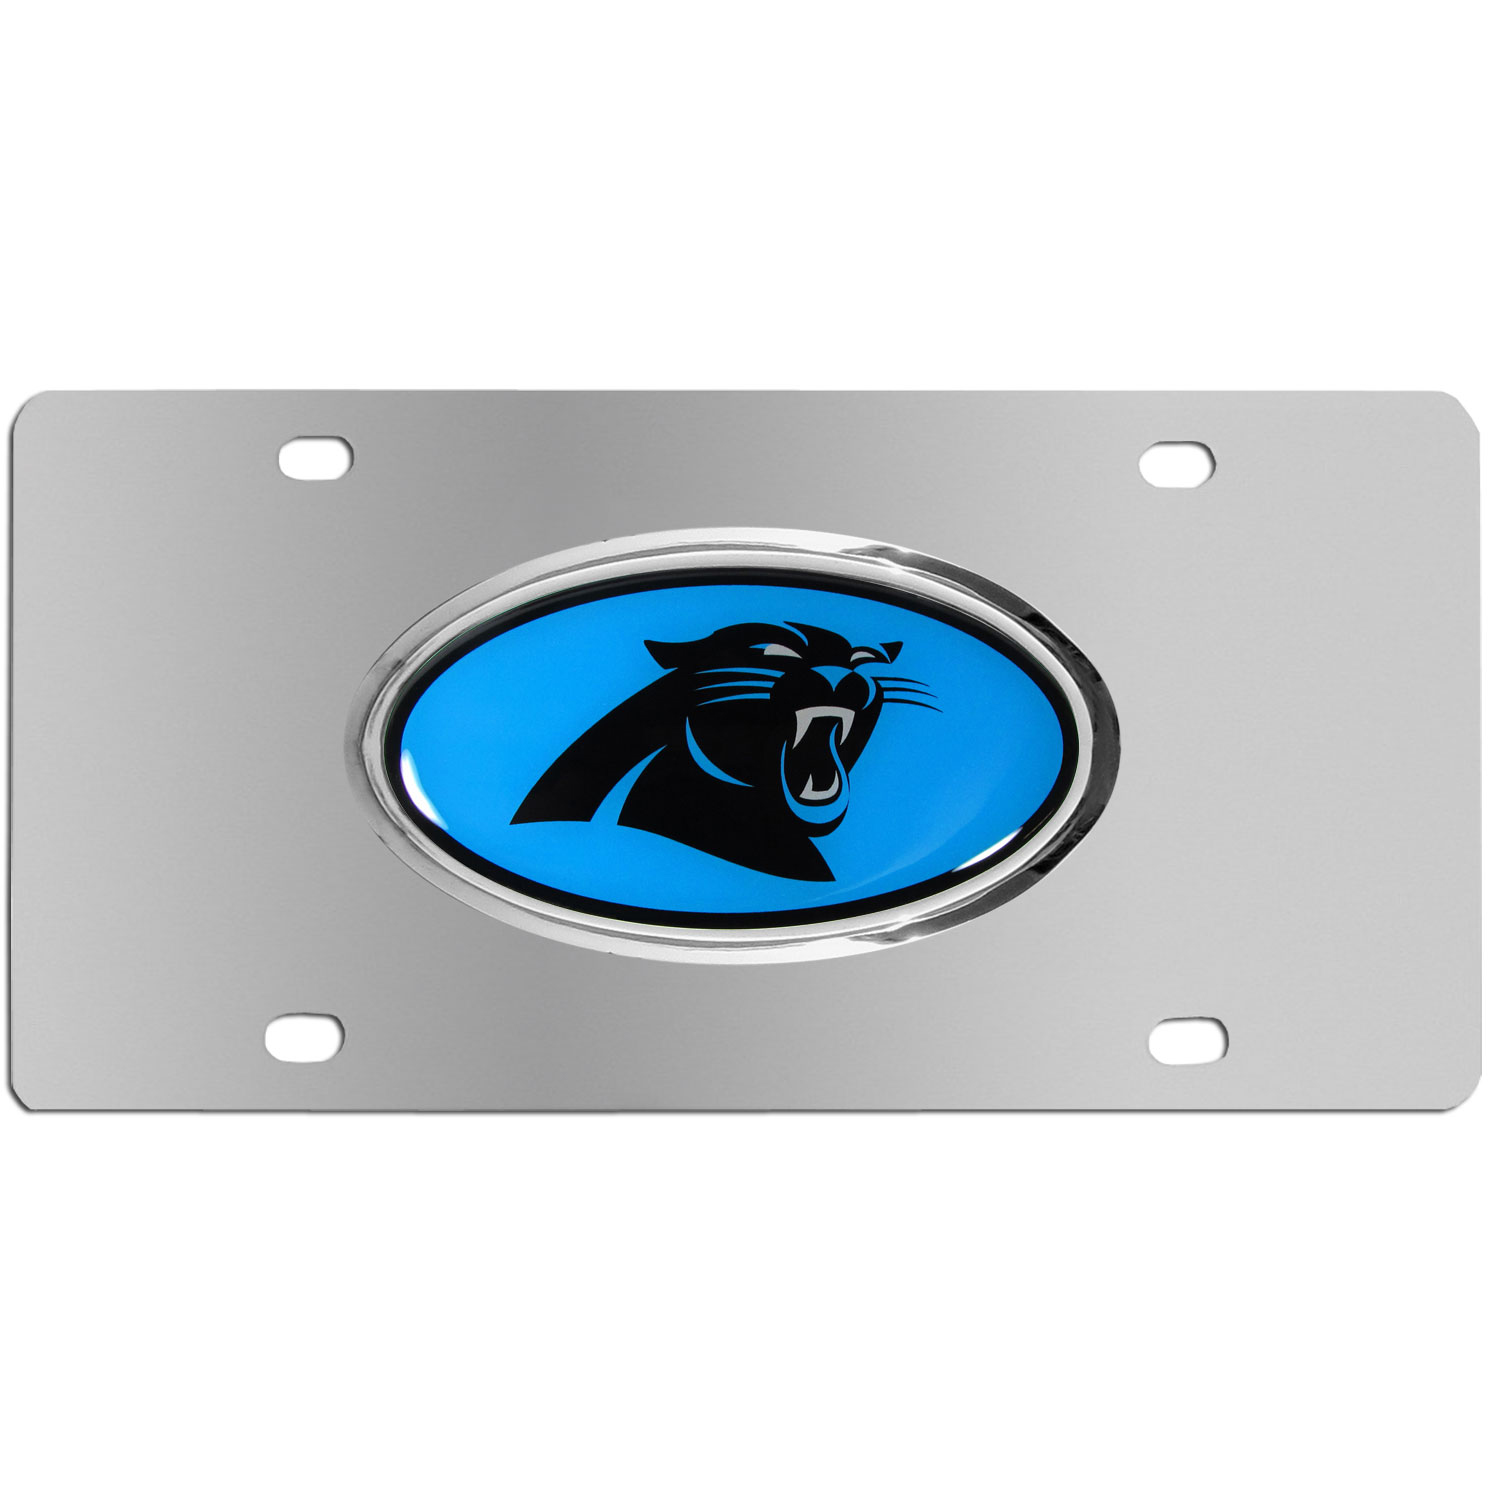 Carolina Panthers Steel Plate - Accessorize your vehicle or game room with this unique NFL steel plate featuring your team's logo on a stainless steel plate.